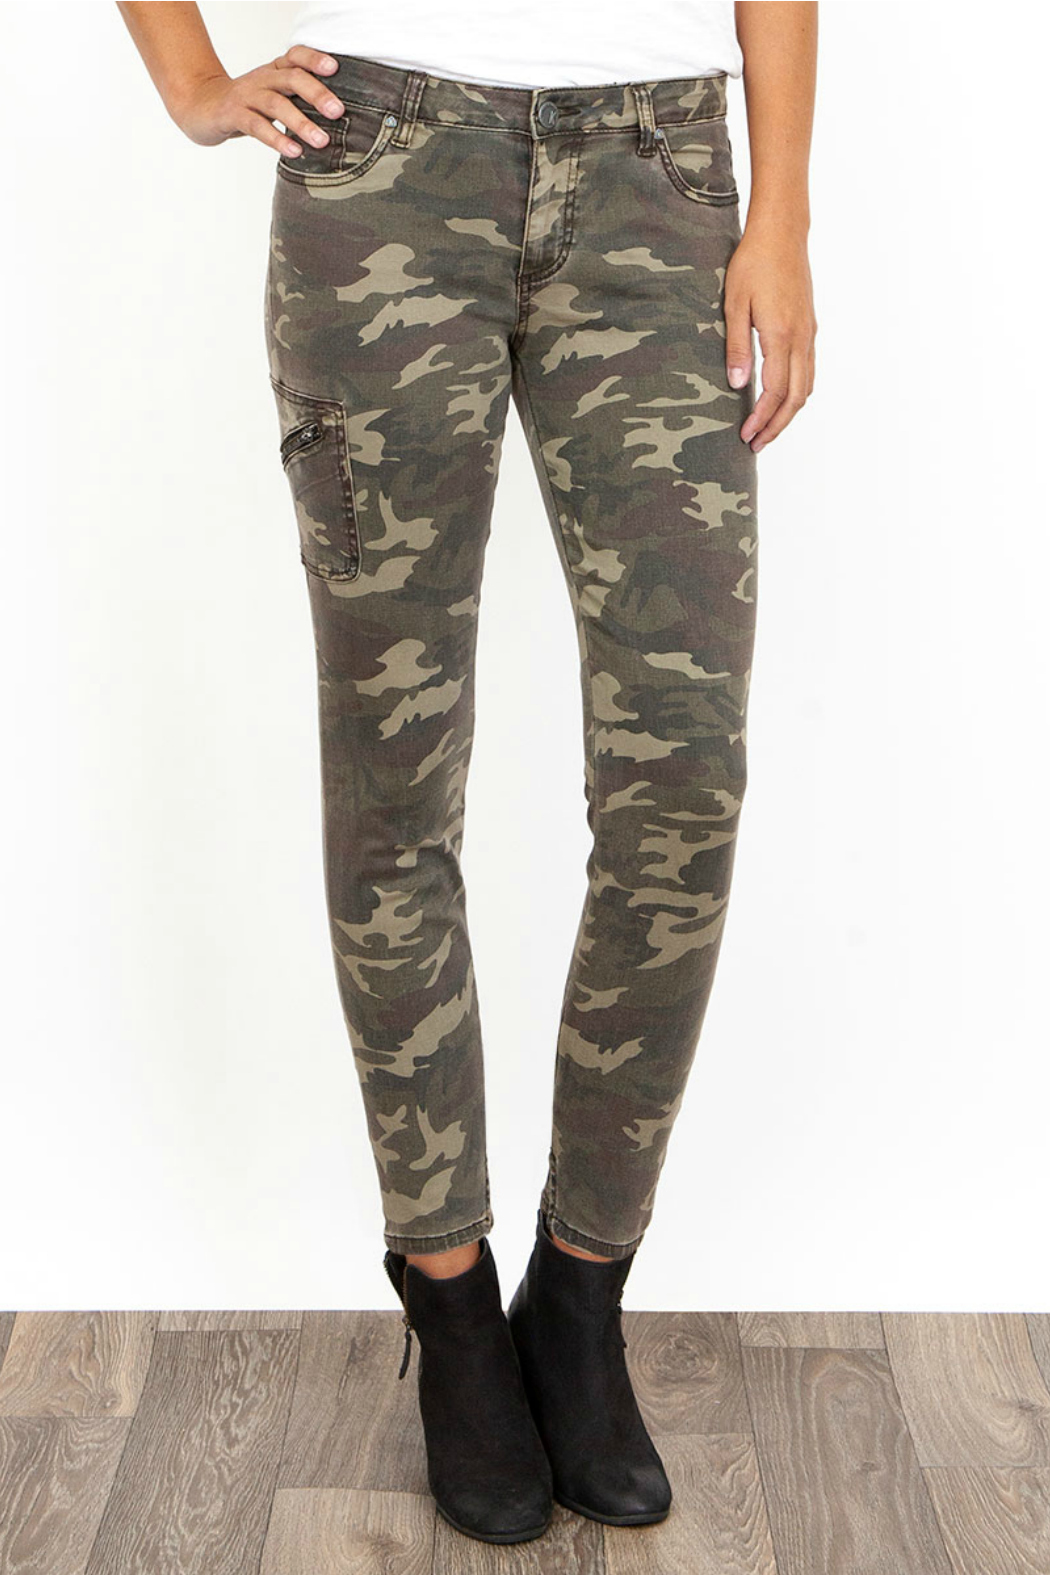 7b69067e51f49 KUT Donna Camo Side Pocket Ankle Pant from New Jersey by Charlotte's ...